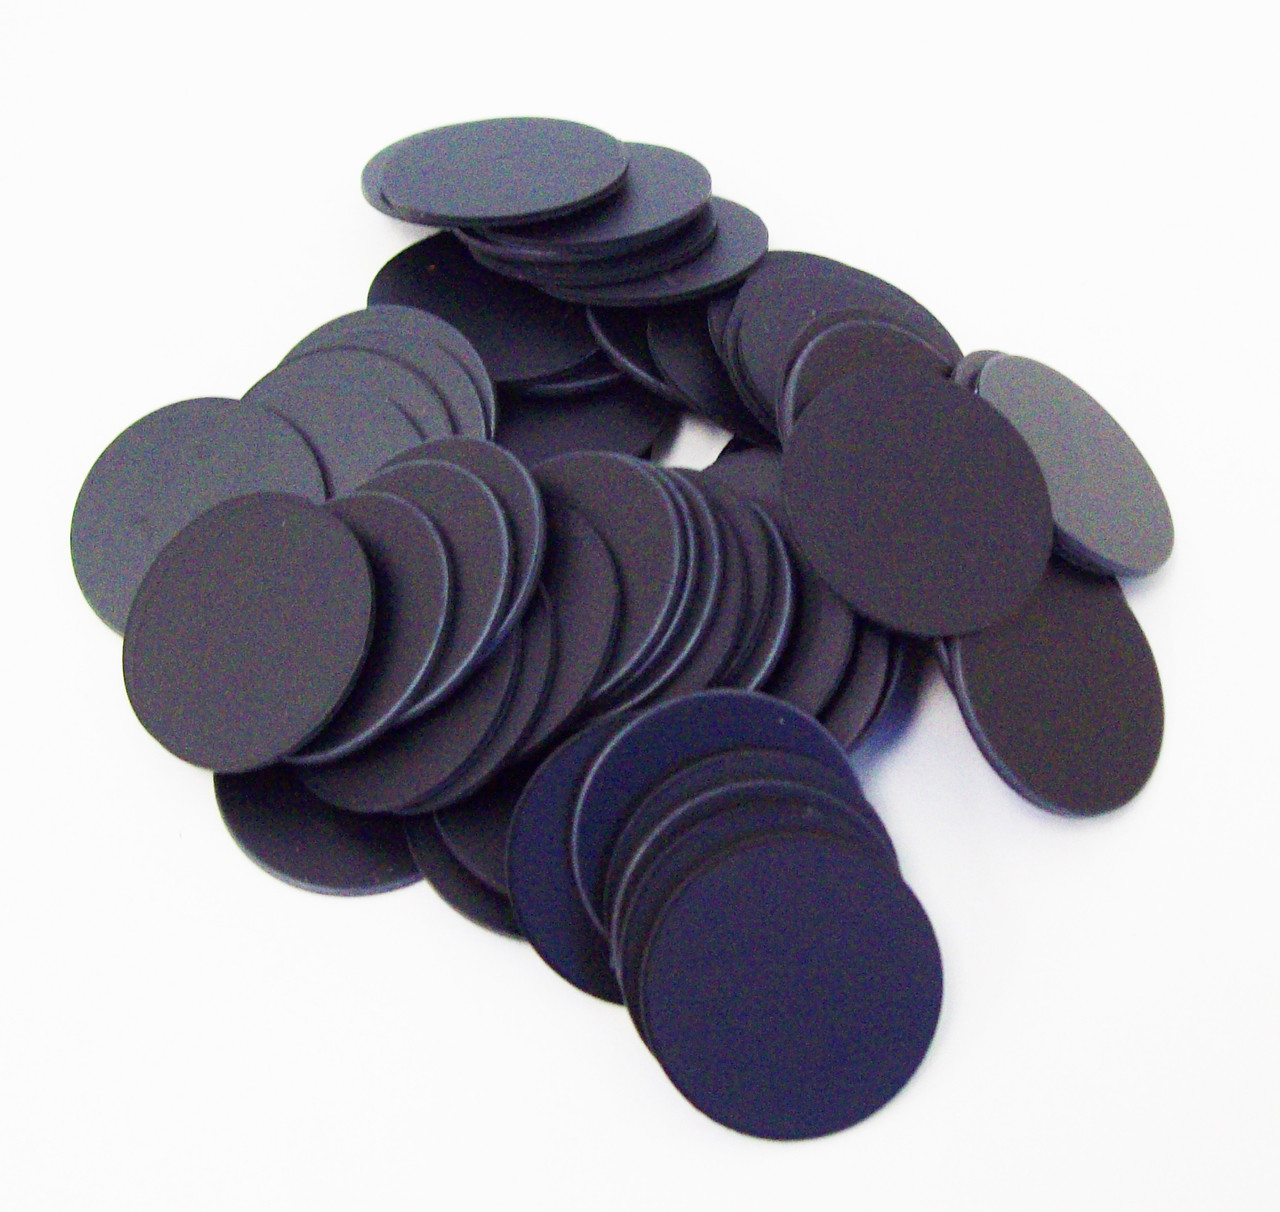 Plastic Flat Back Discs ONLY for 1